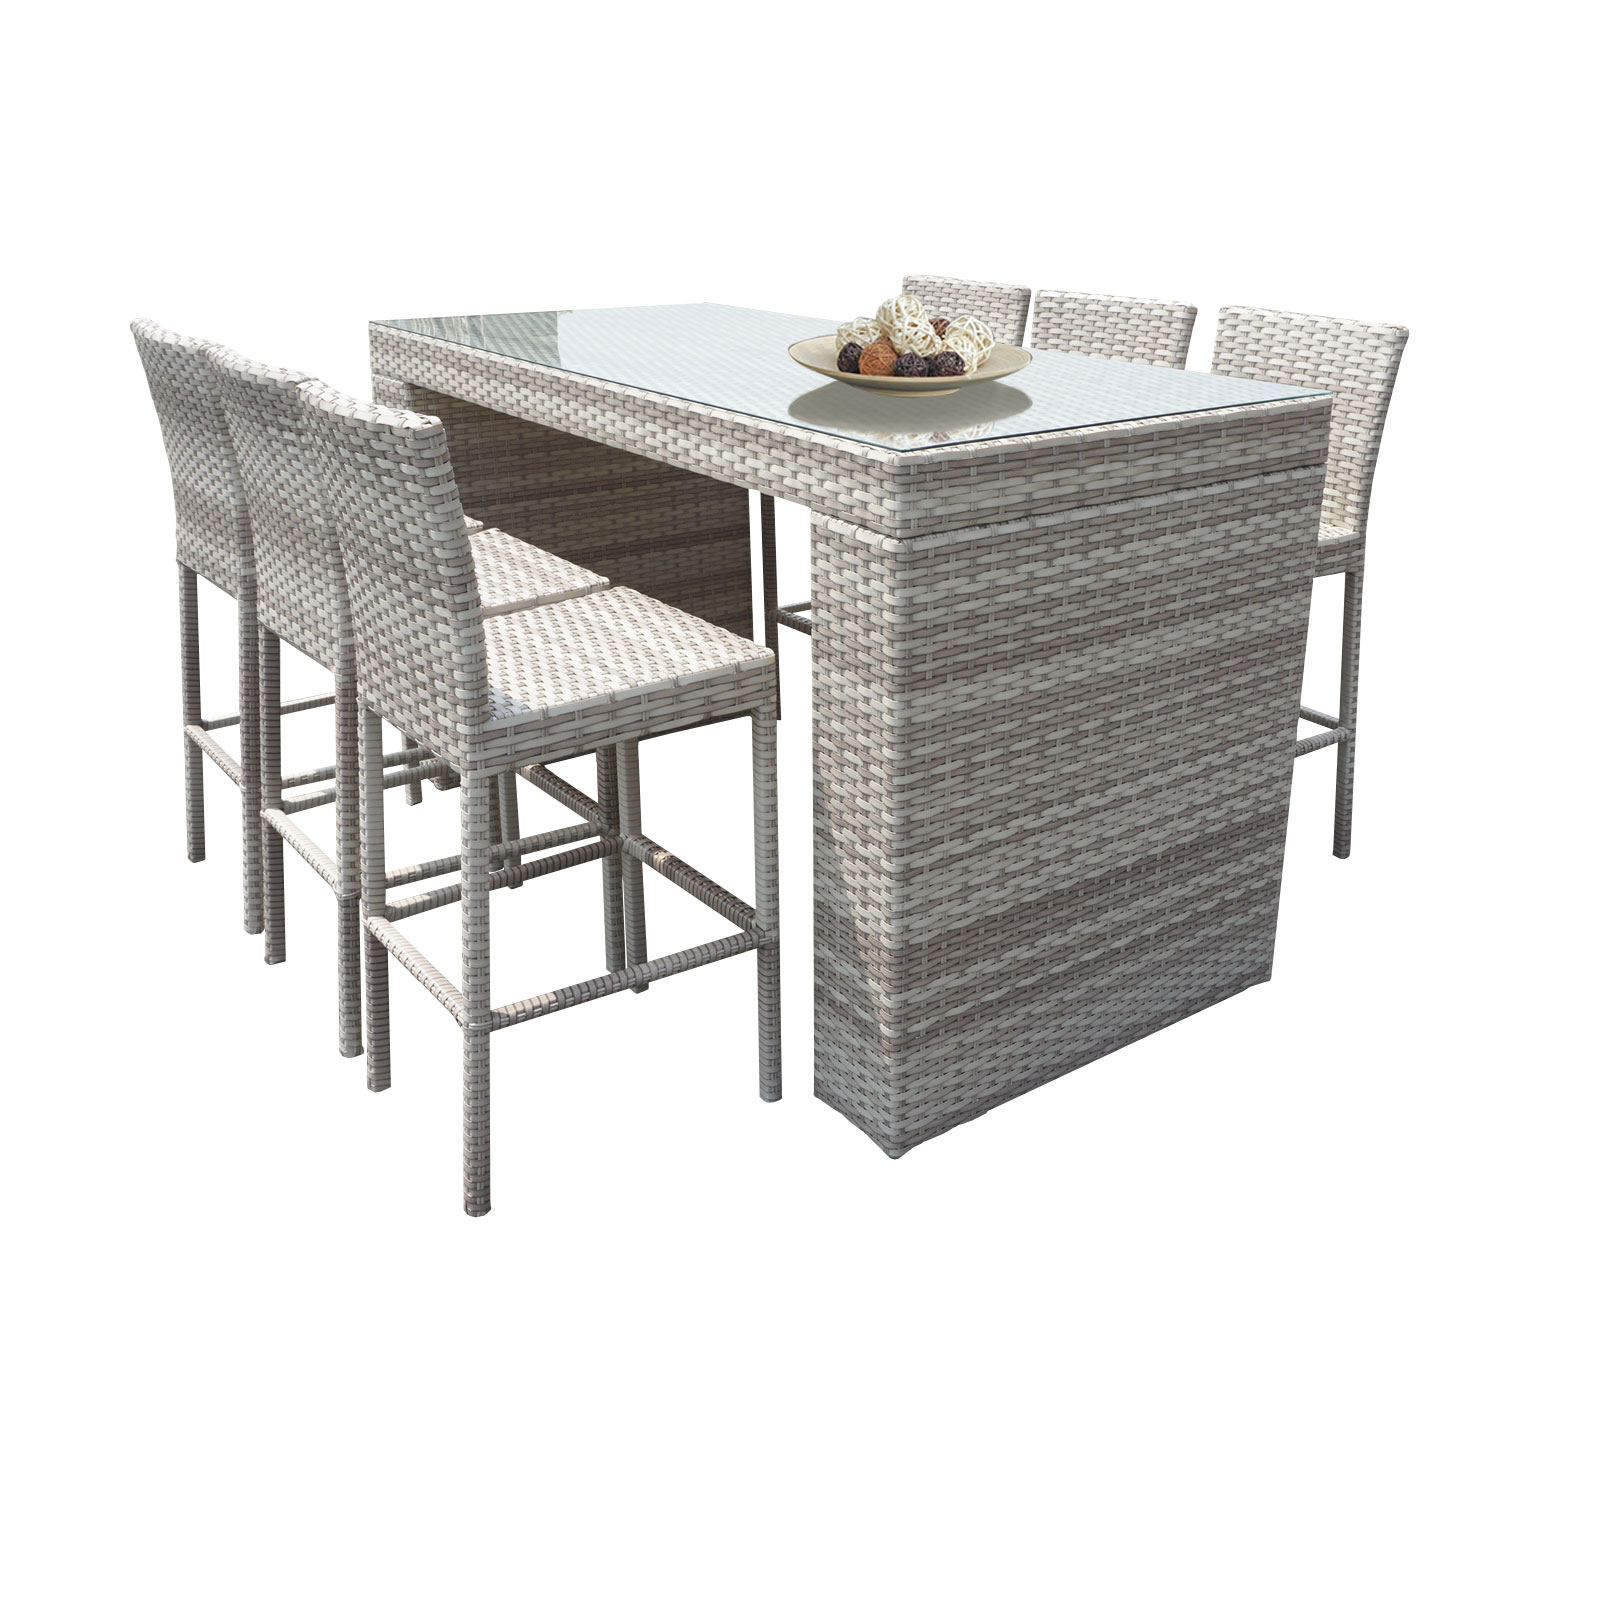 New Haven Bar Table Set With Barstools 7 Piece Outdoor Wicker Patio  Furniture